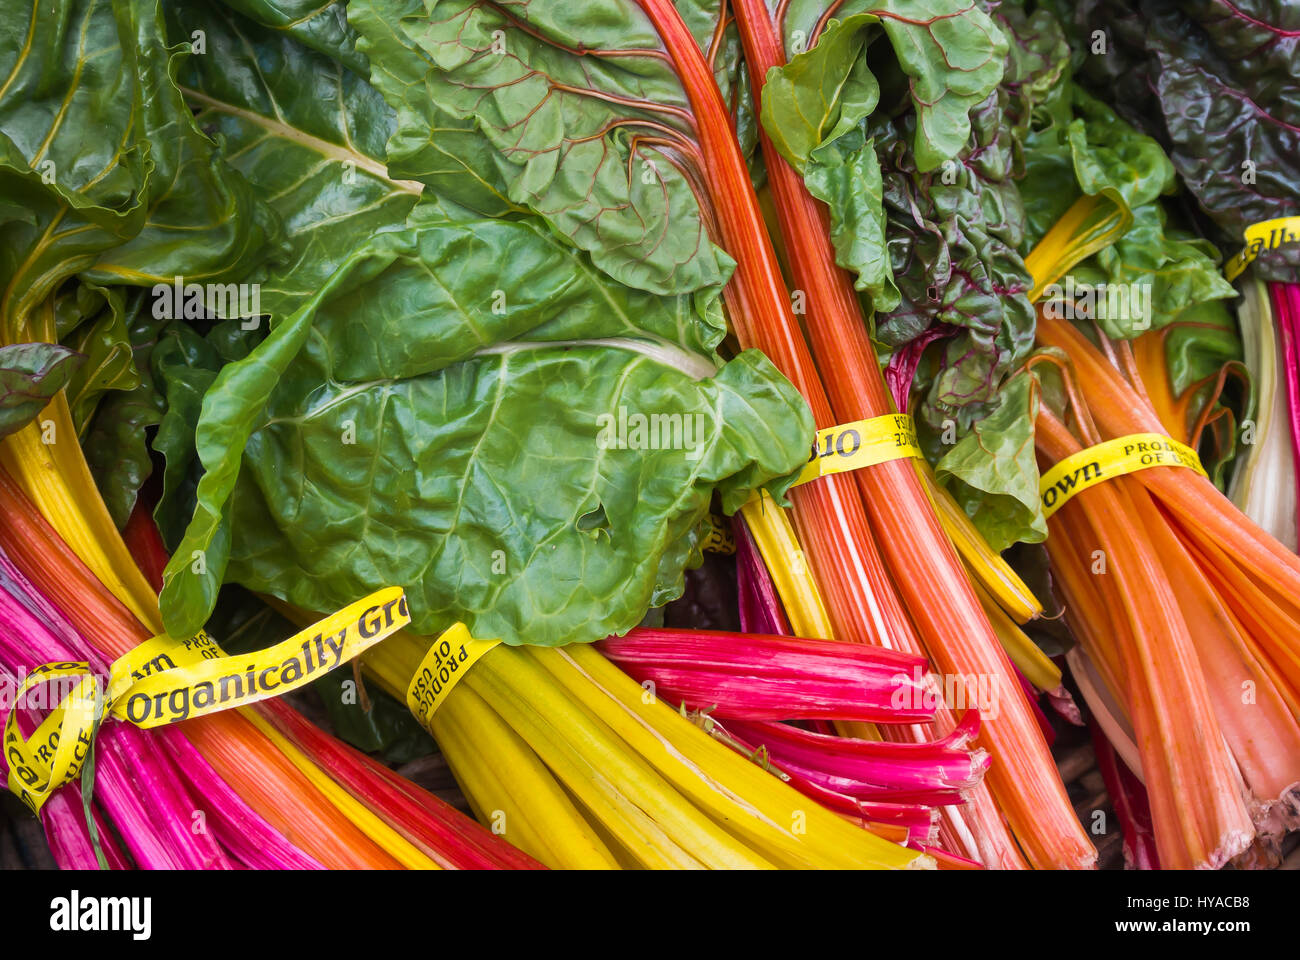 Rainbow Chard On Display For Purchase Stock Photo Alamy